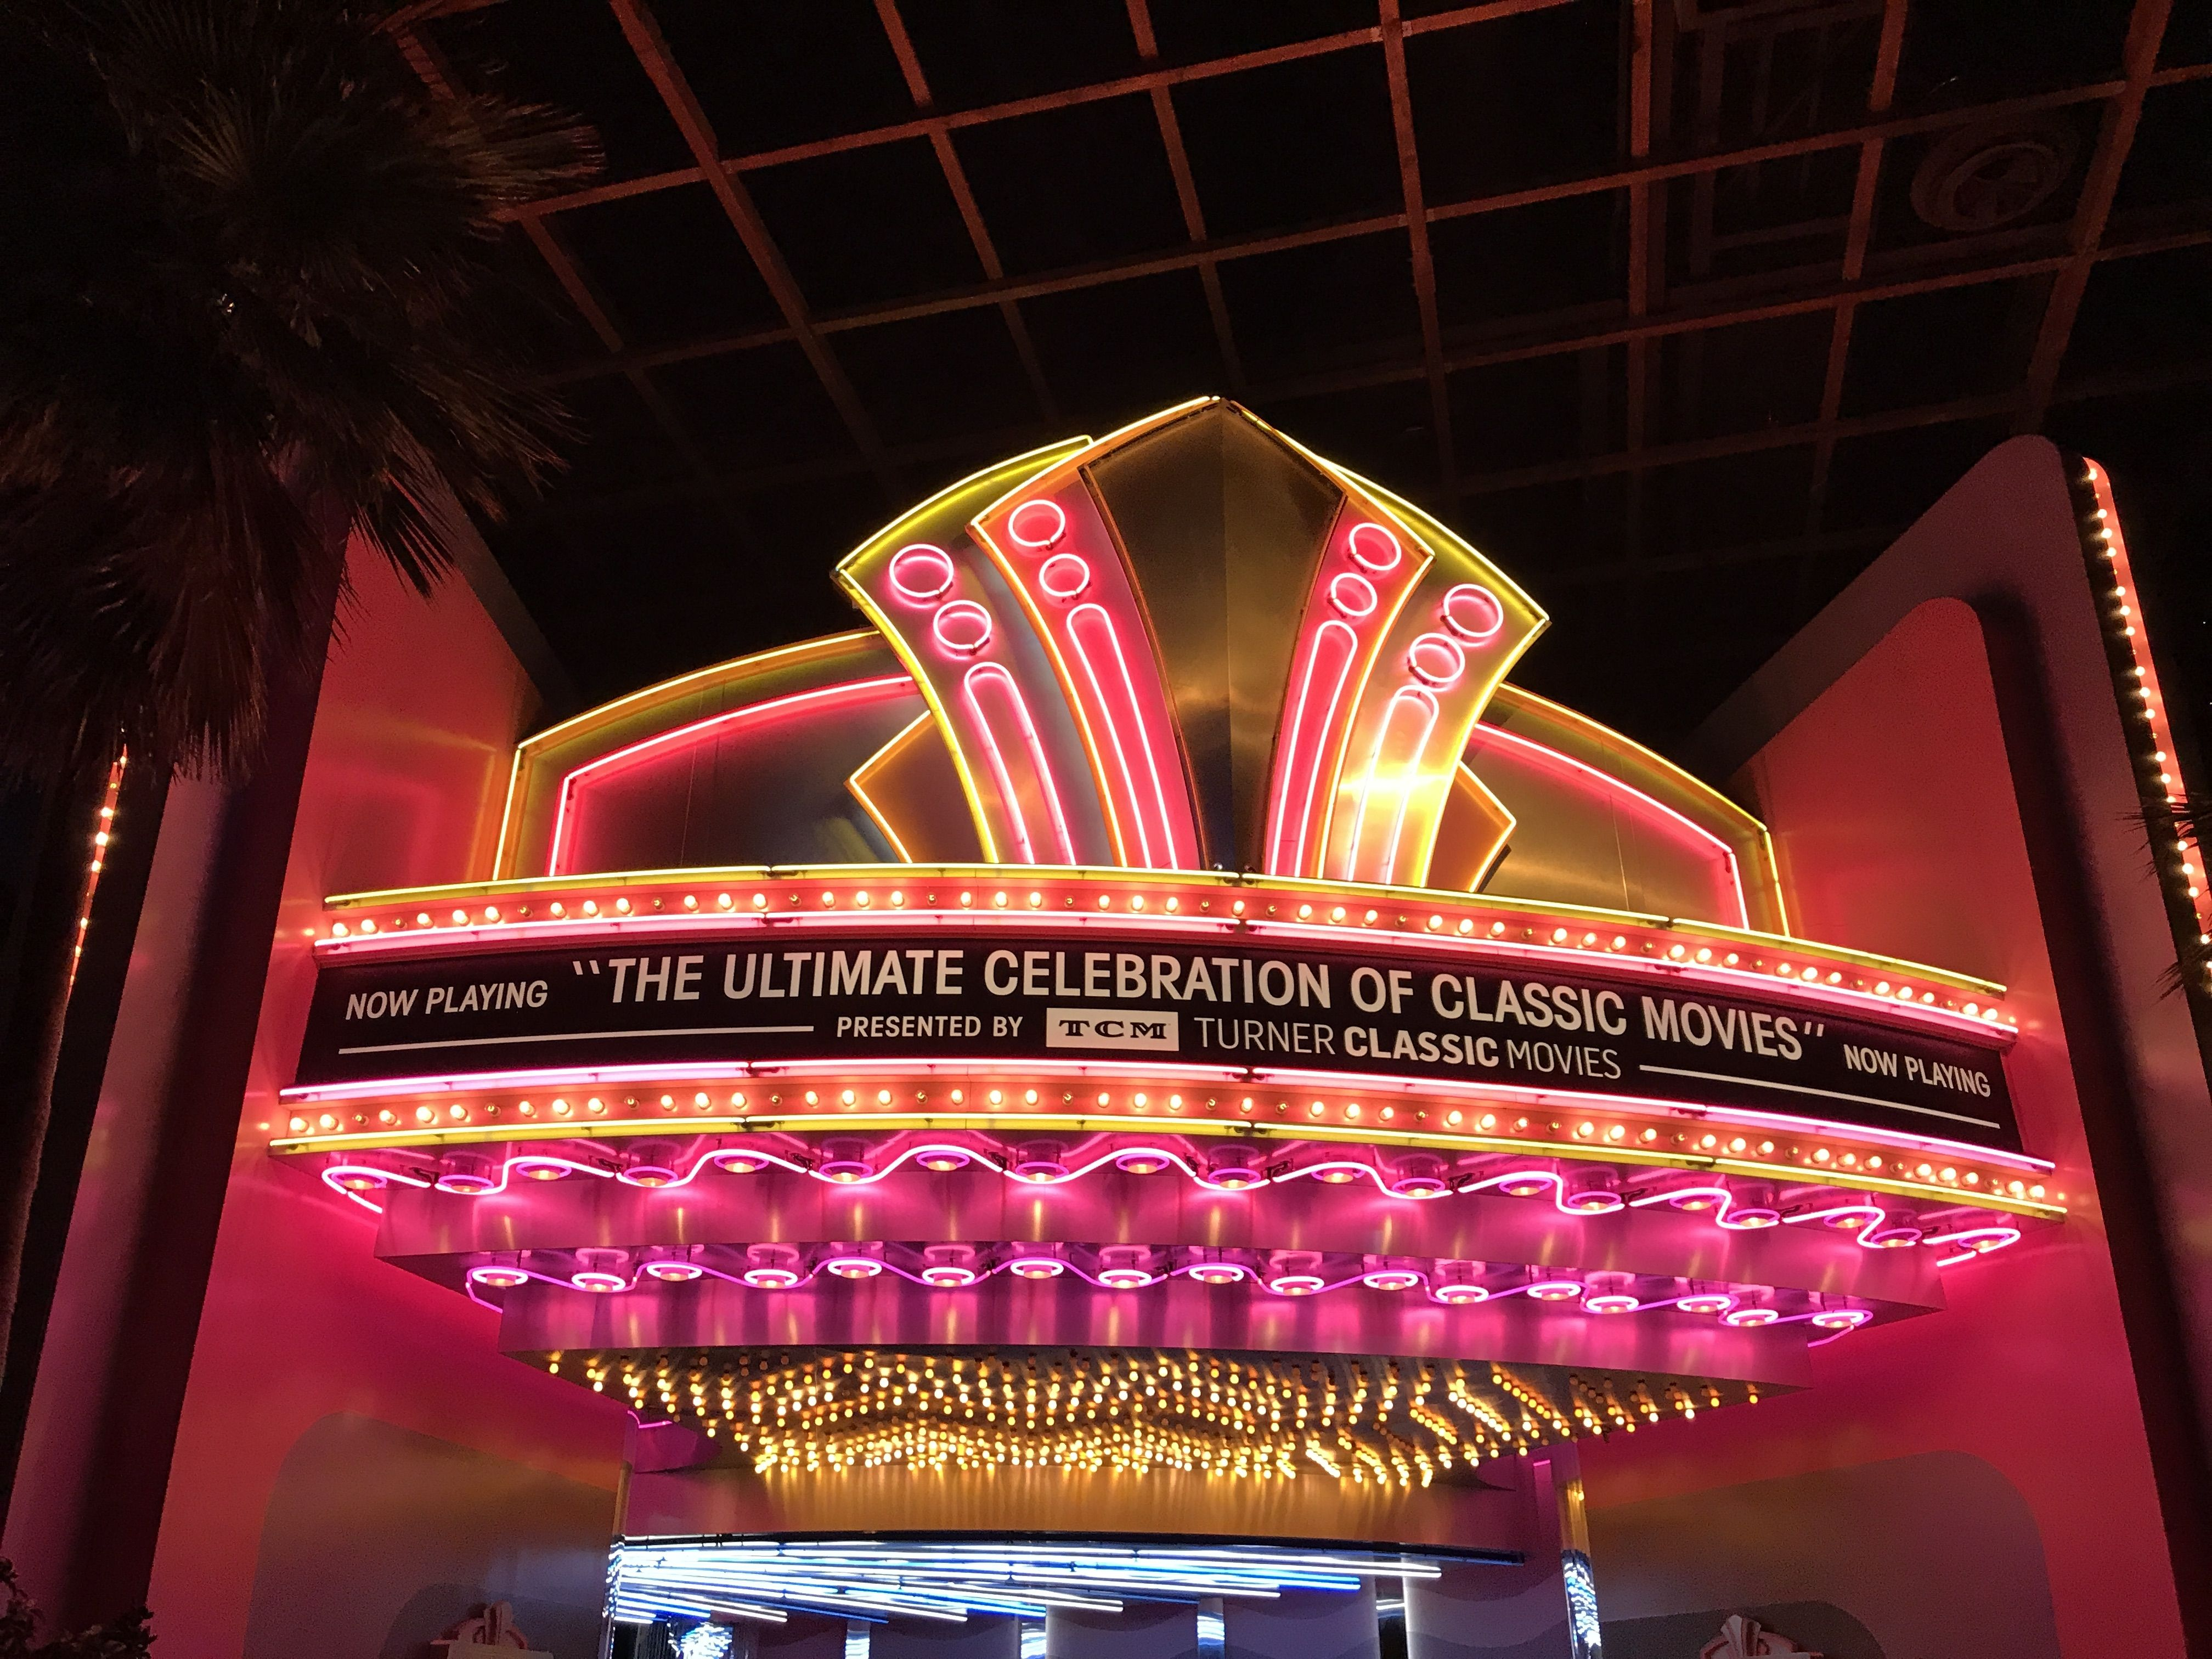 By Pink Diva The Great Movie Ride recently closed at